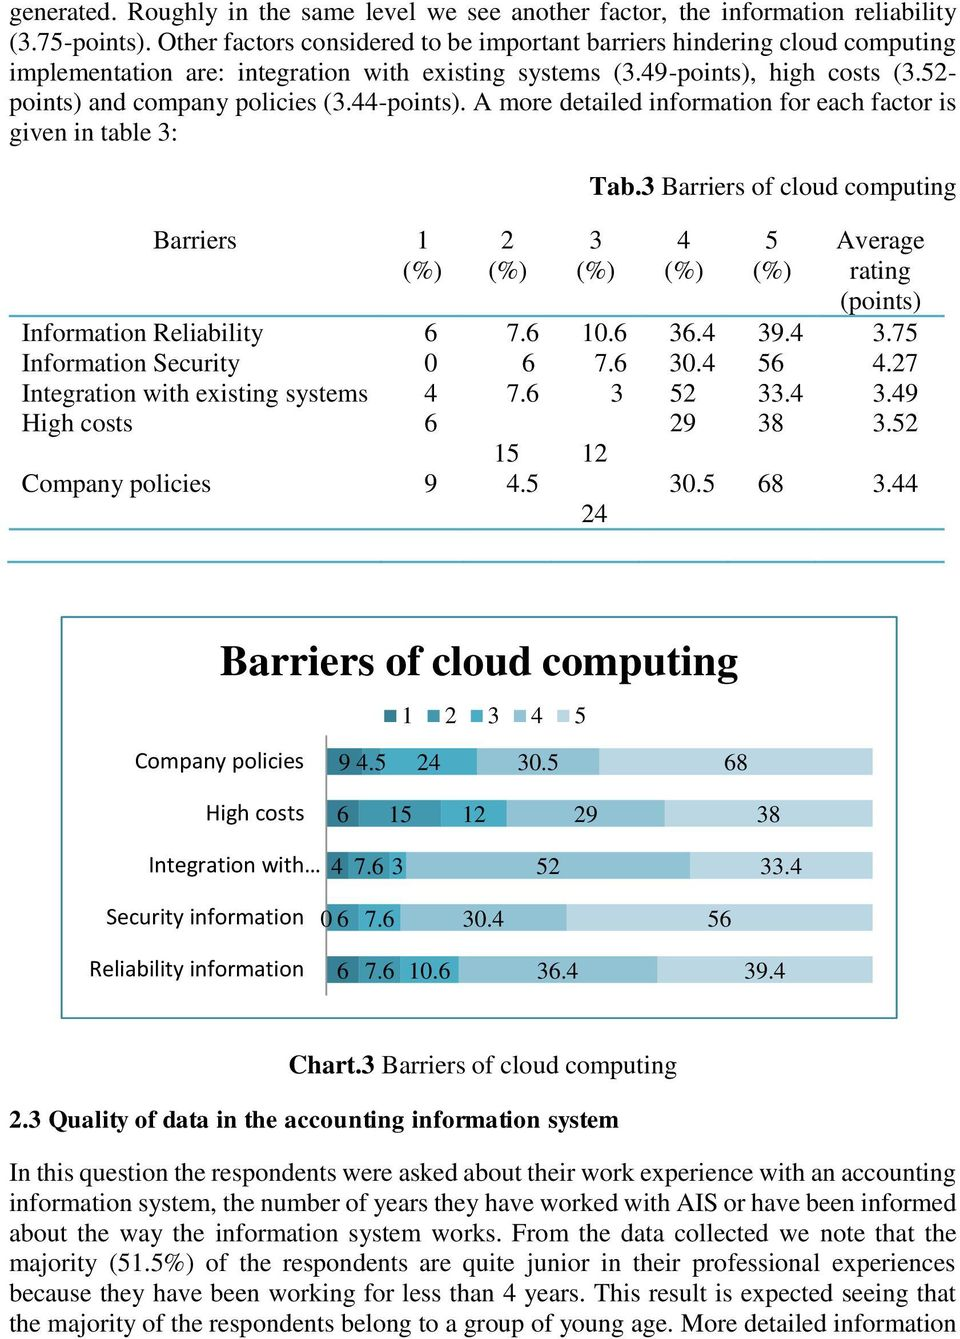 44-points). A more detailed information for each factor is given in table 3: Barriers 1 2 Tab.3 Barriers of cloud computing 3 4 5 Average rating (points) Information Reliability 6 7.6 10.6 36.4 39.